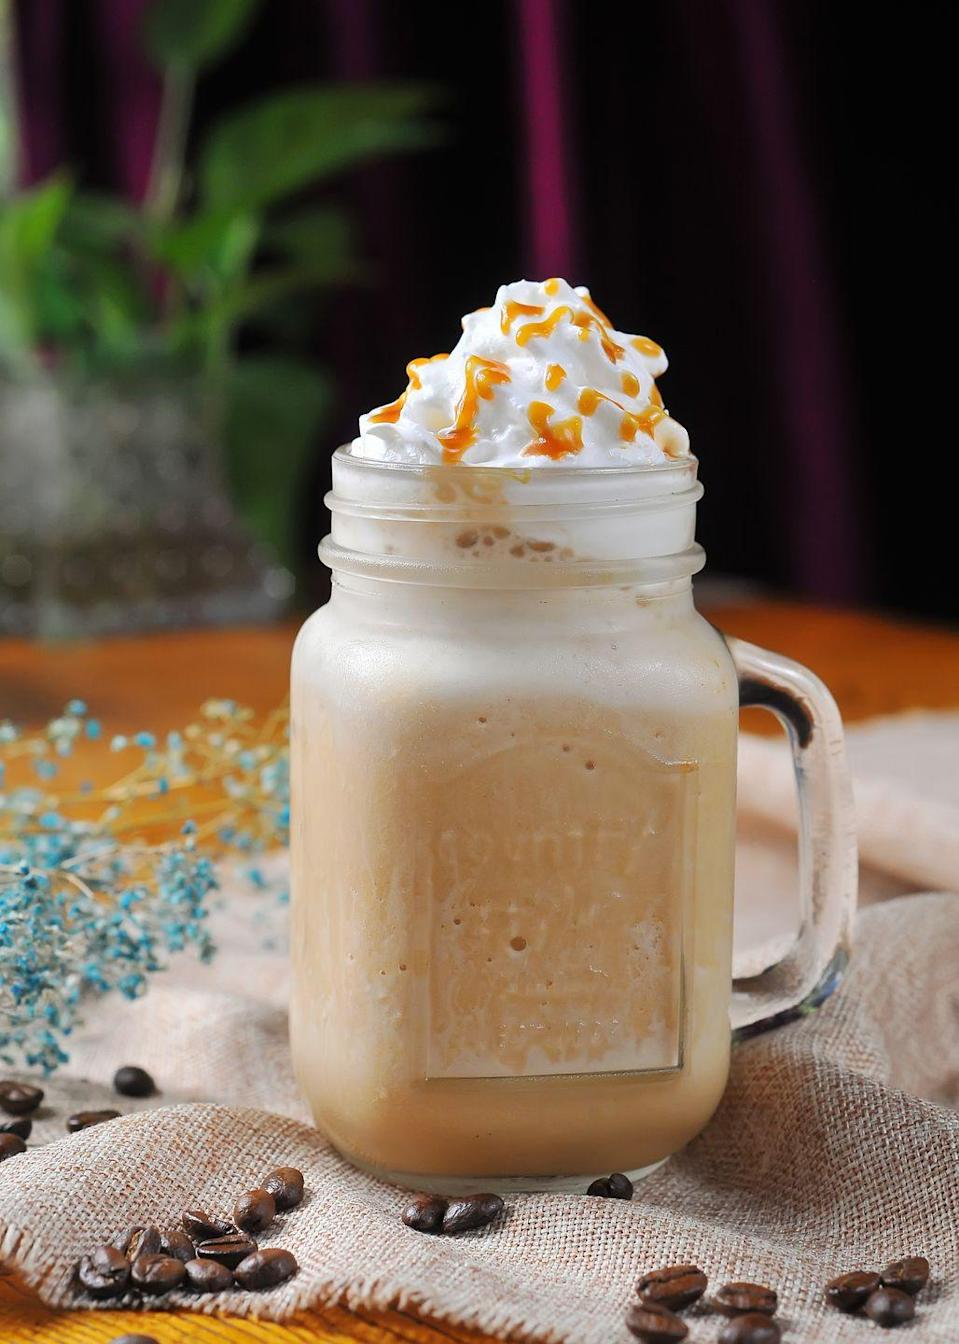 "<p>More dessert than coffee, the Frappuccino is a Starbucks classic — a blended concoction of milk, sugar, coffee and ice, topped with whipped cream and flavored syrups. </p><p><strong>Pro tip: </strong>Although there are dozens of variations, the vanilla, mocha, and caramel versions are all easy to make at home.<strong><br></strong></p><p><a href=""https://www.delish.com/cooking/recipe-ideas/a32816778/starbucks-caramel-frappuccino-copycat-recipe/"" rel=""nofollow noopener"" target=""_blank"" data-ylk=""slk:Get the recipe for Frappuccino from Delish »"" class=""link rapid-noclick-resp""><em>Get the recipe for Frappuccino from Delish »</em></a><br></p>"